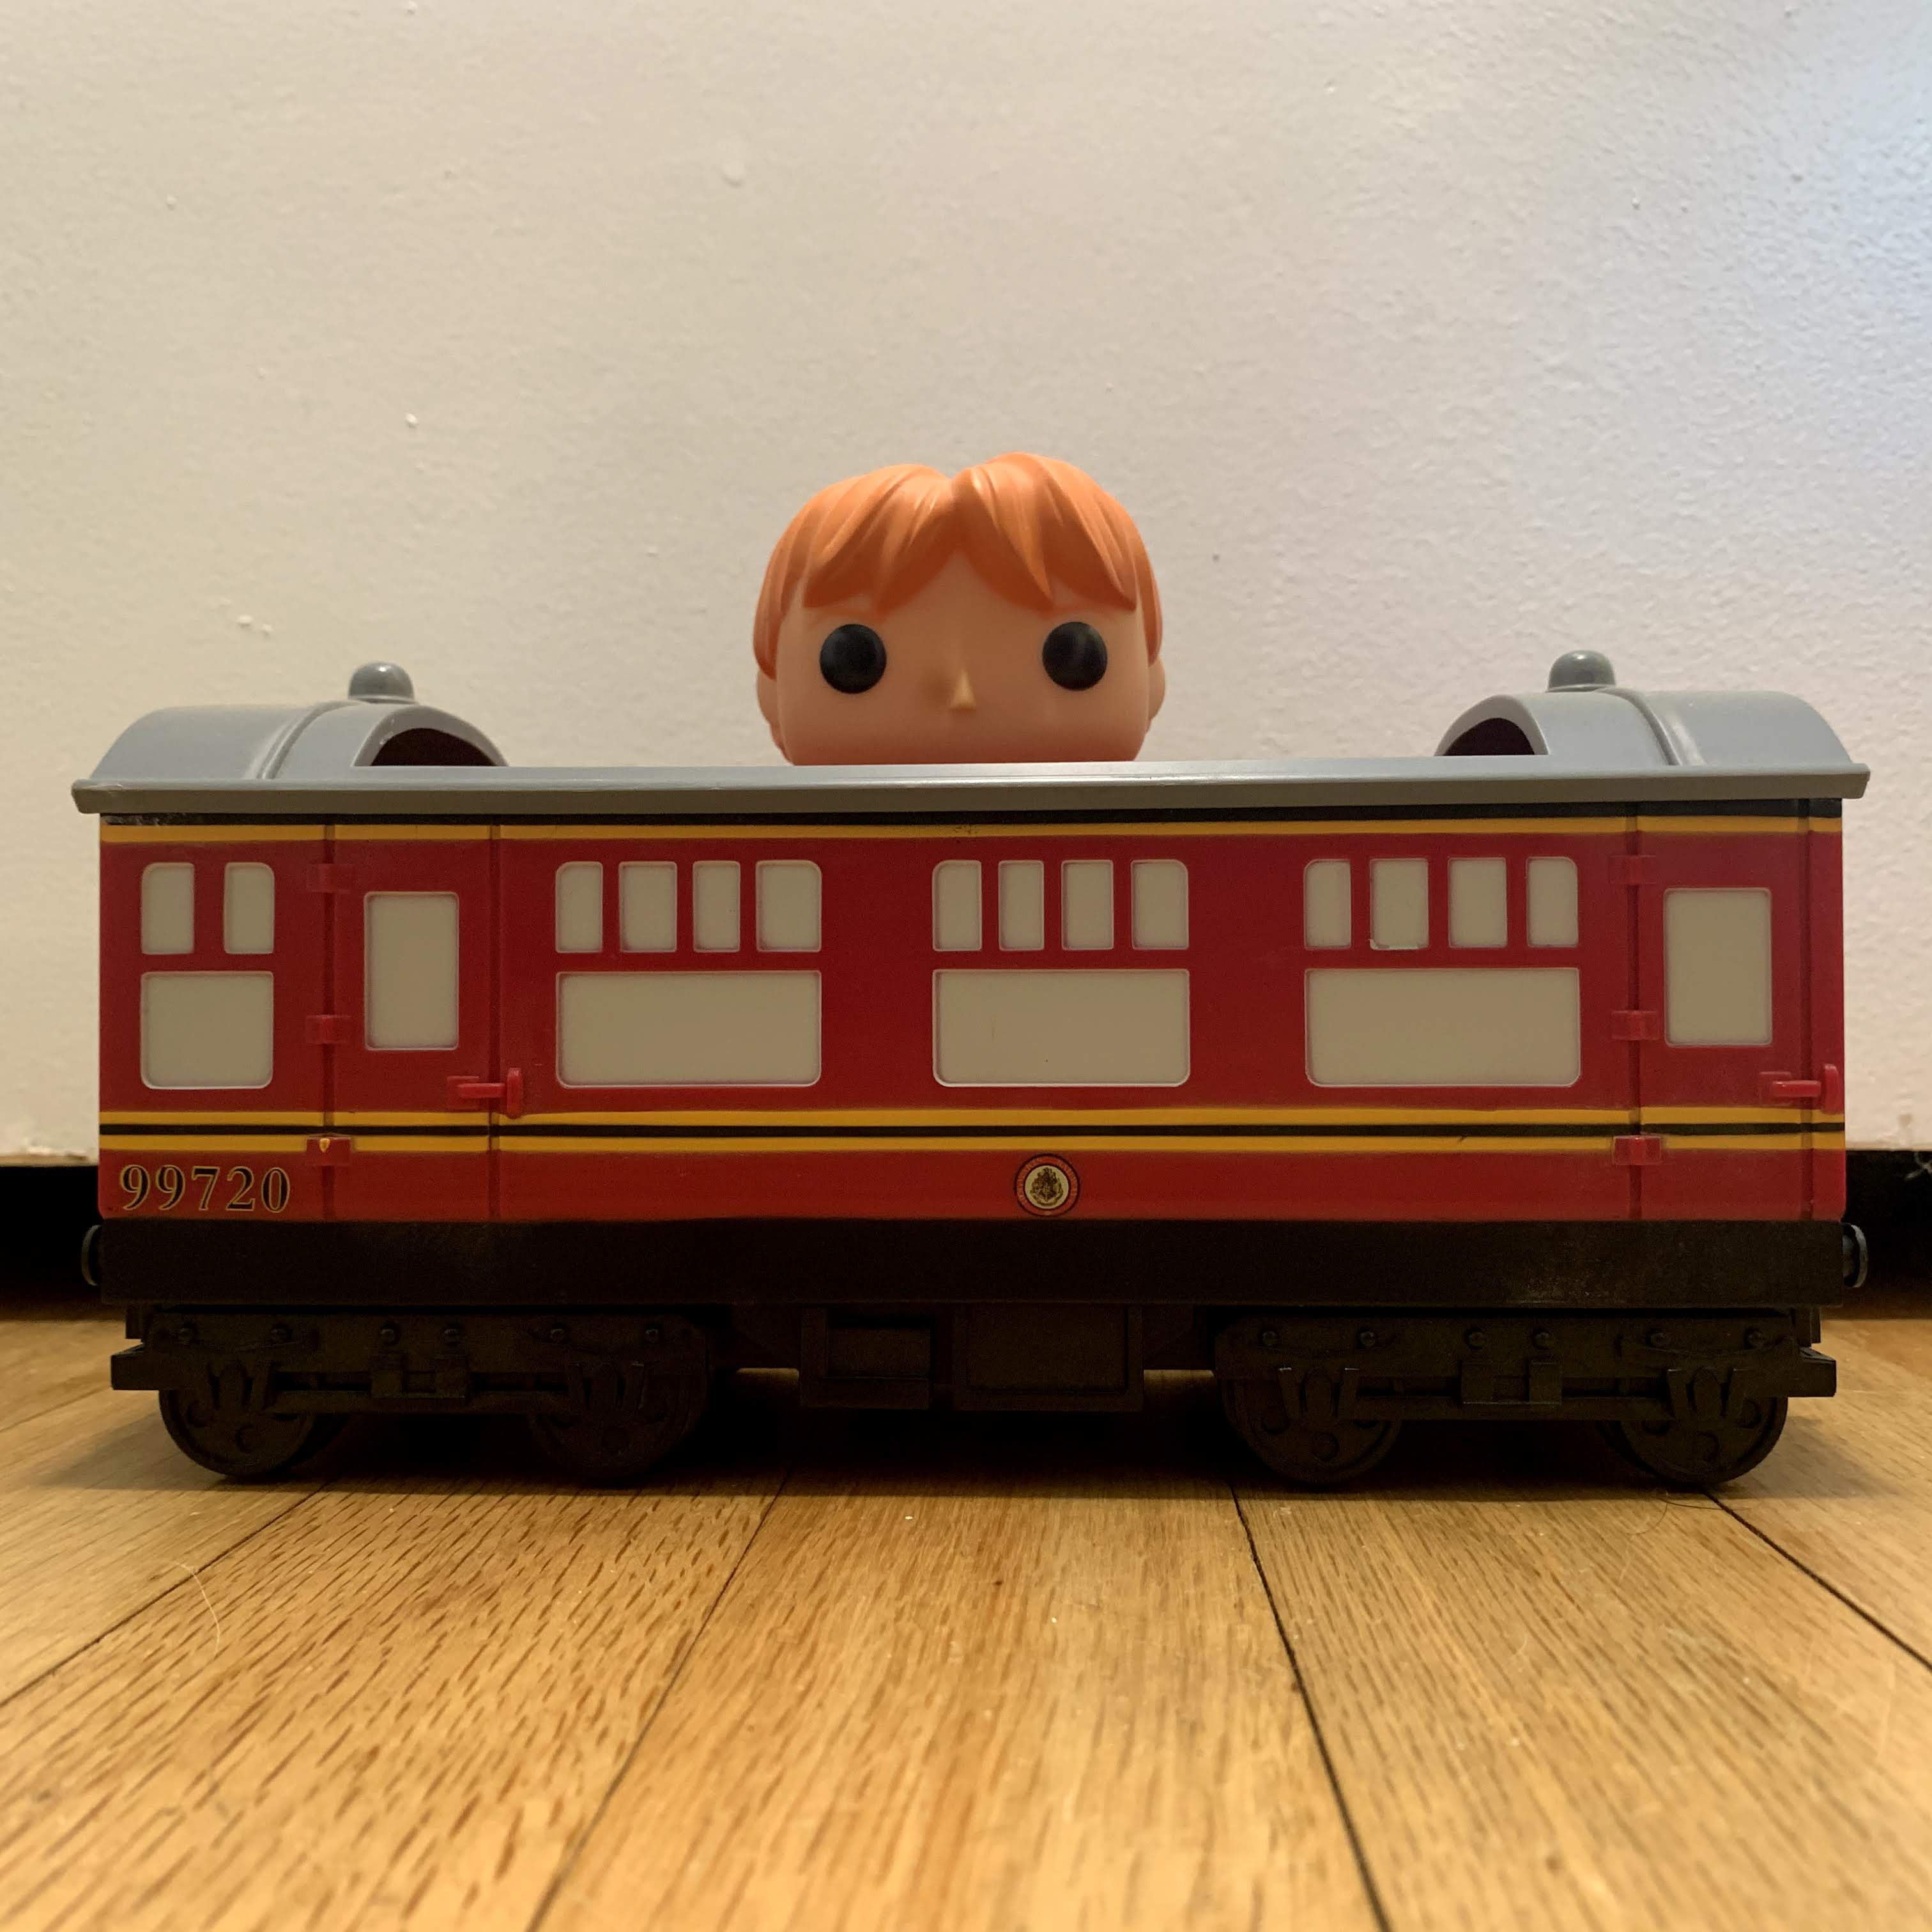 21 Hogwarts Express Carriage with Ron Weasley